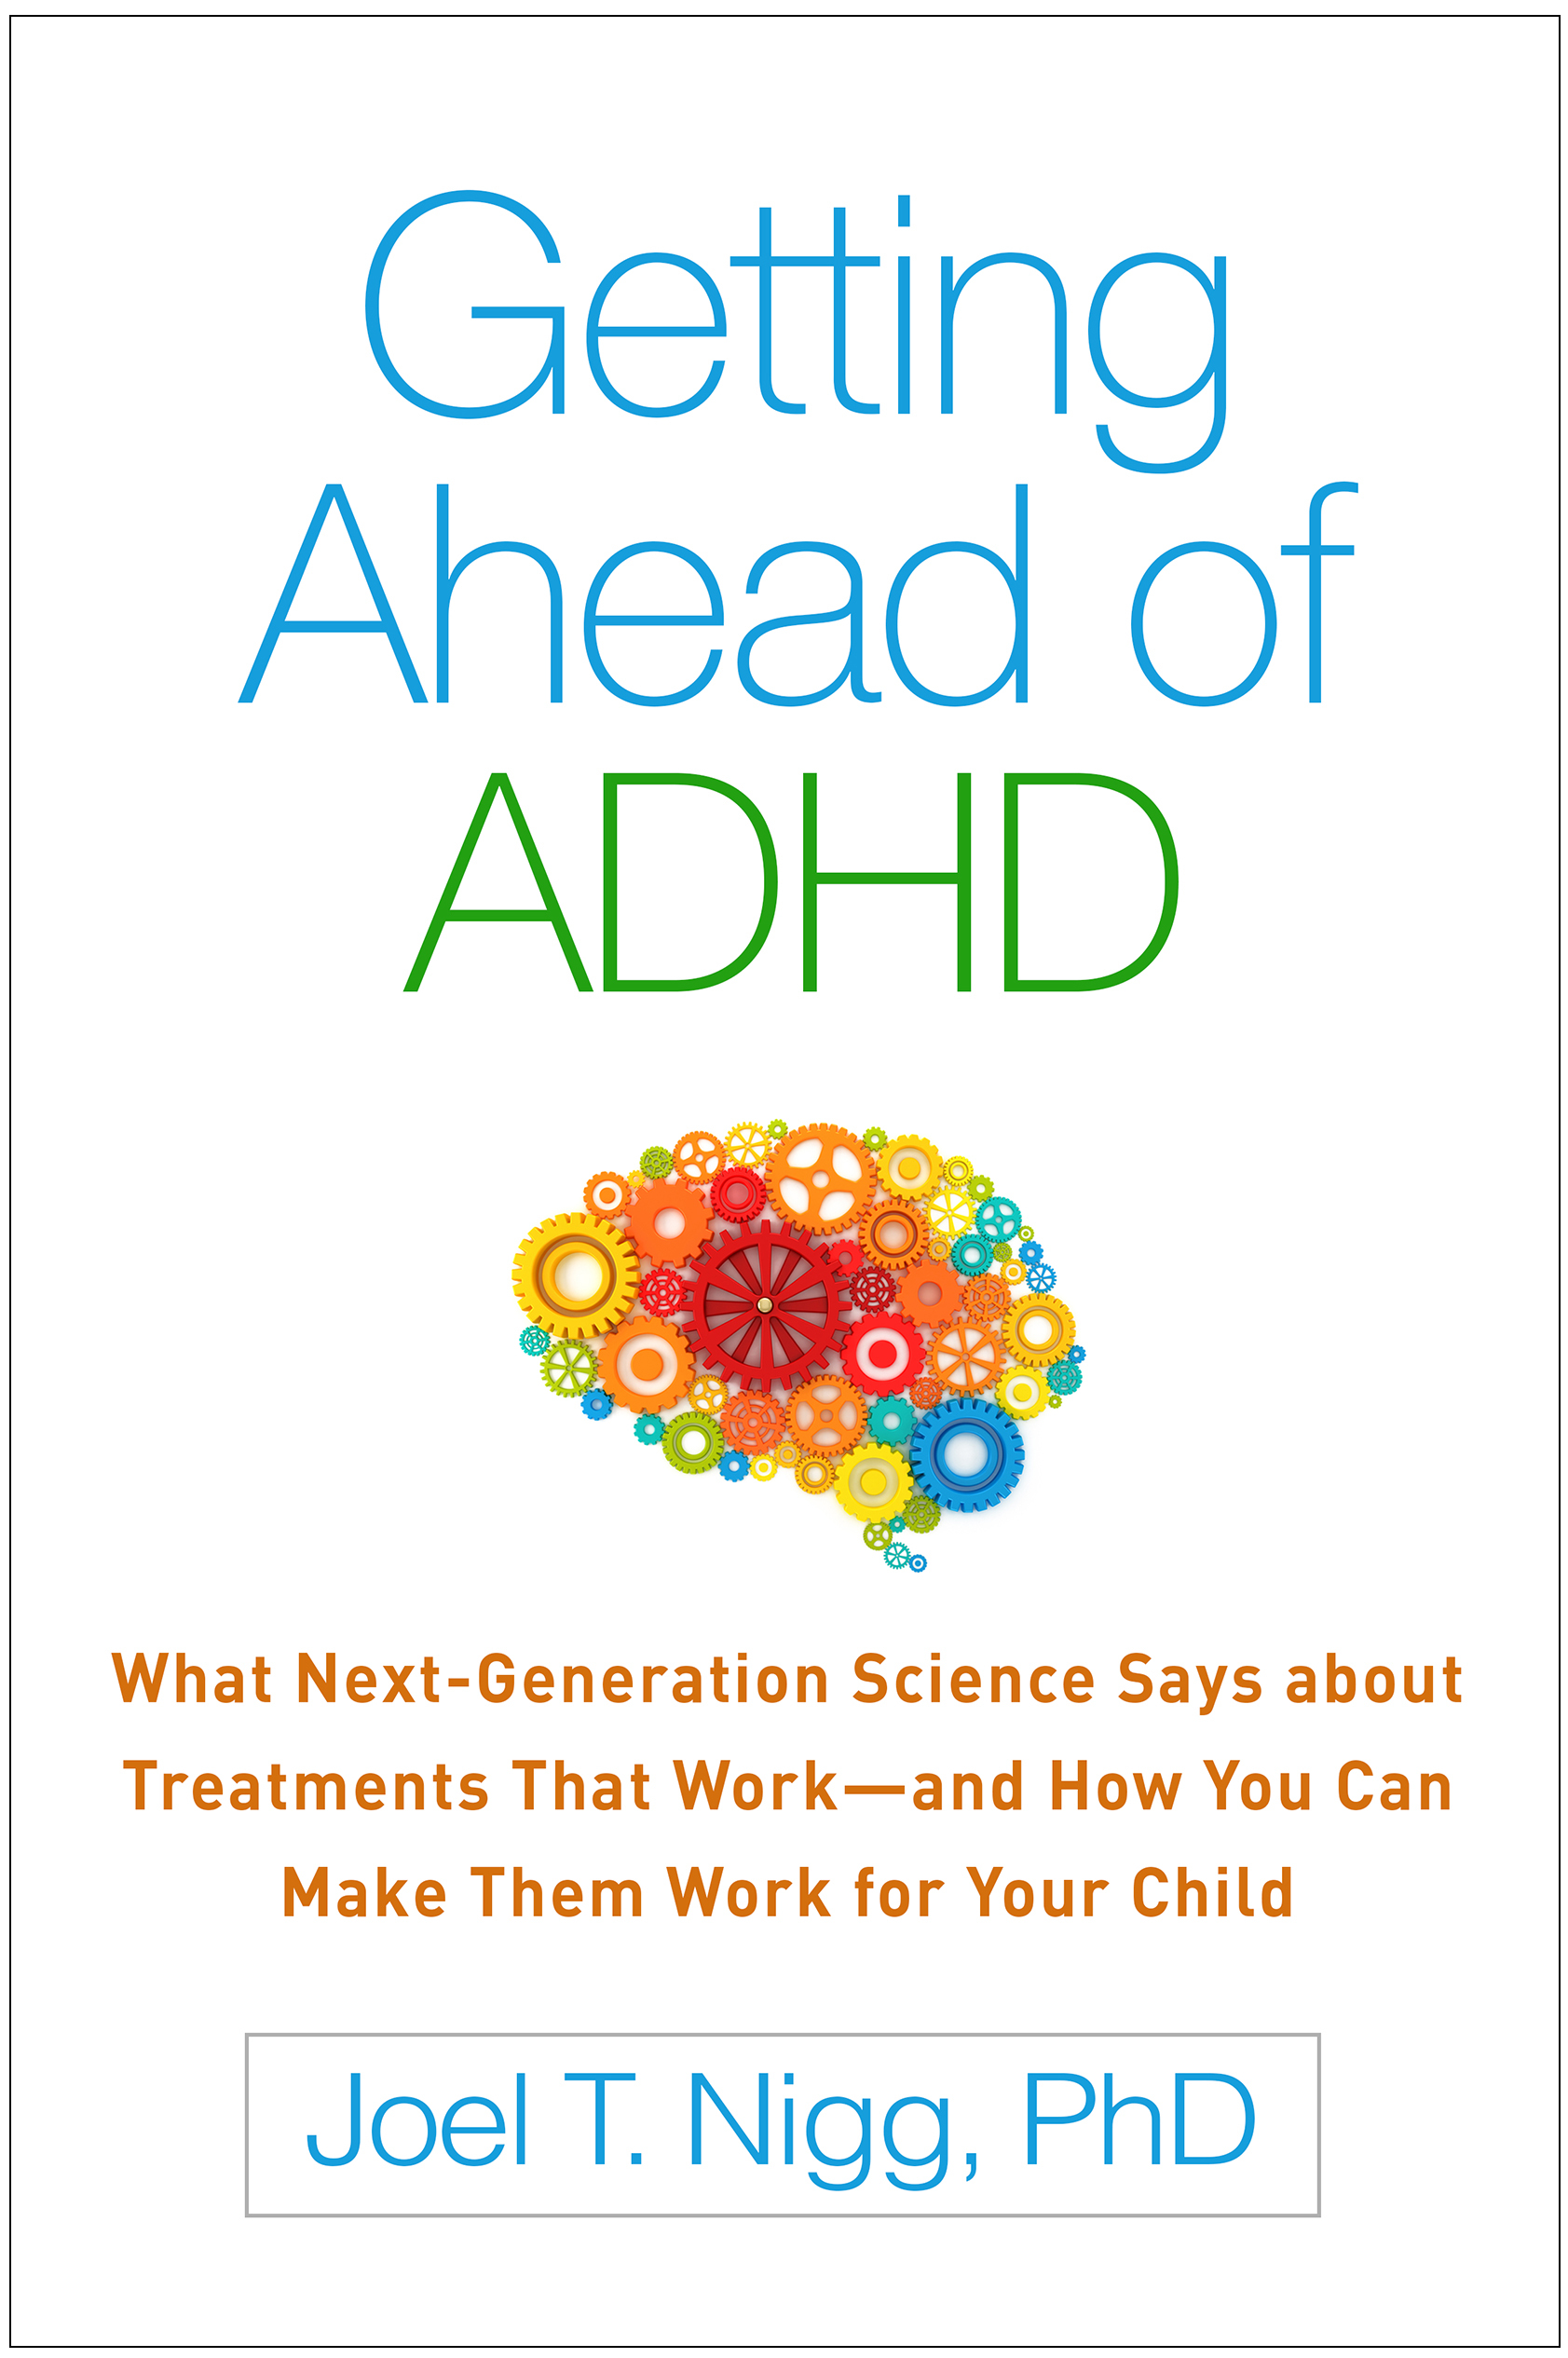 Getting Ahead of ADHD What Next-Generation Science Says about Treatments That Work